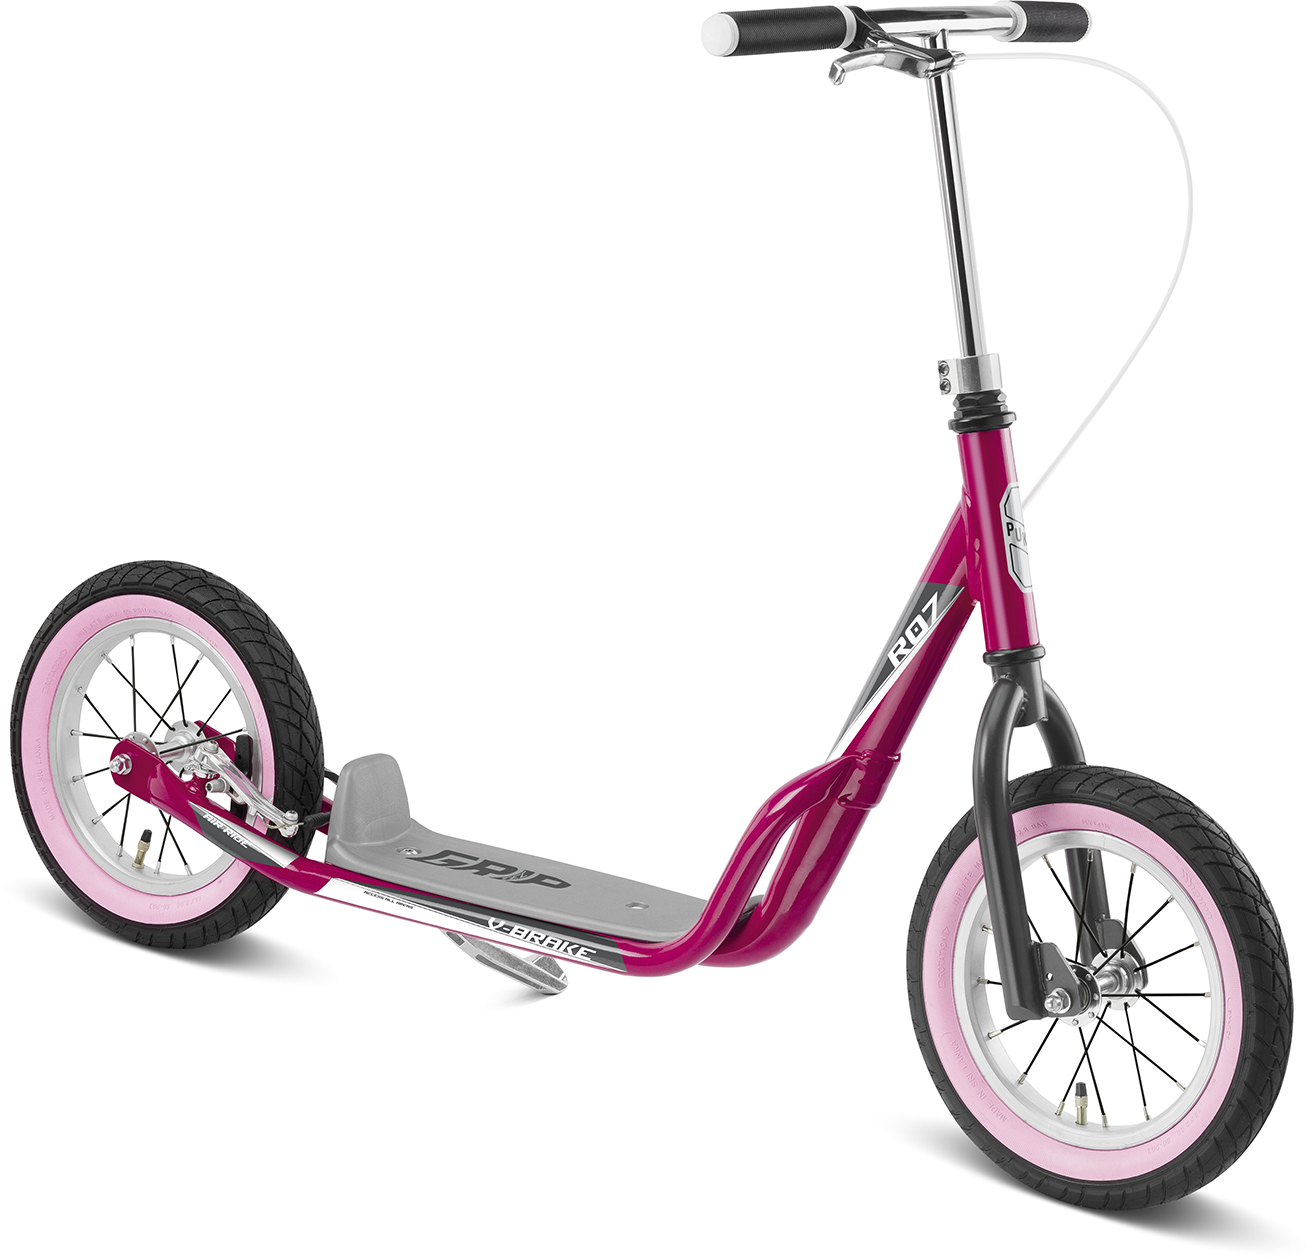 patinette puky R07L fille cross roue gonflable 7 ans frein arrière berry